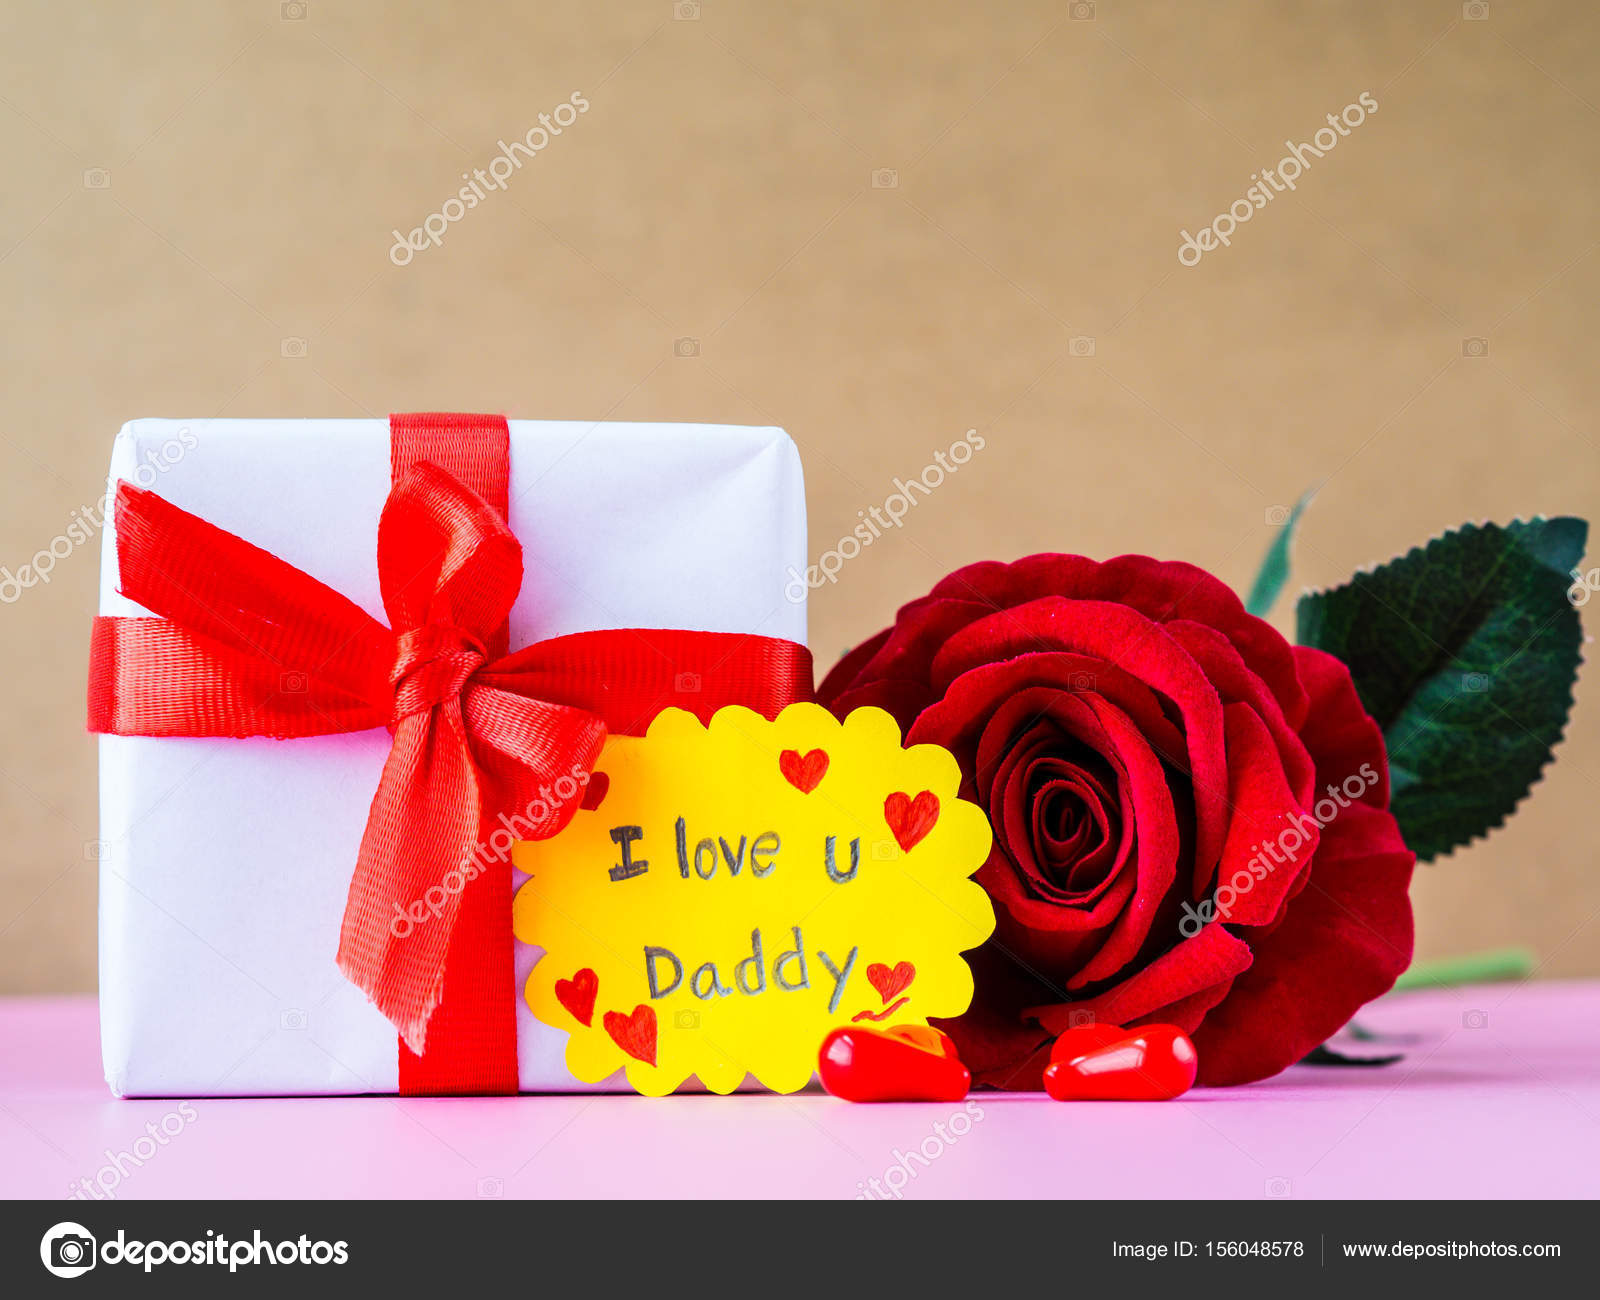 Pics Fathers Day Father S Day Concept I Love You Dady